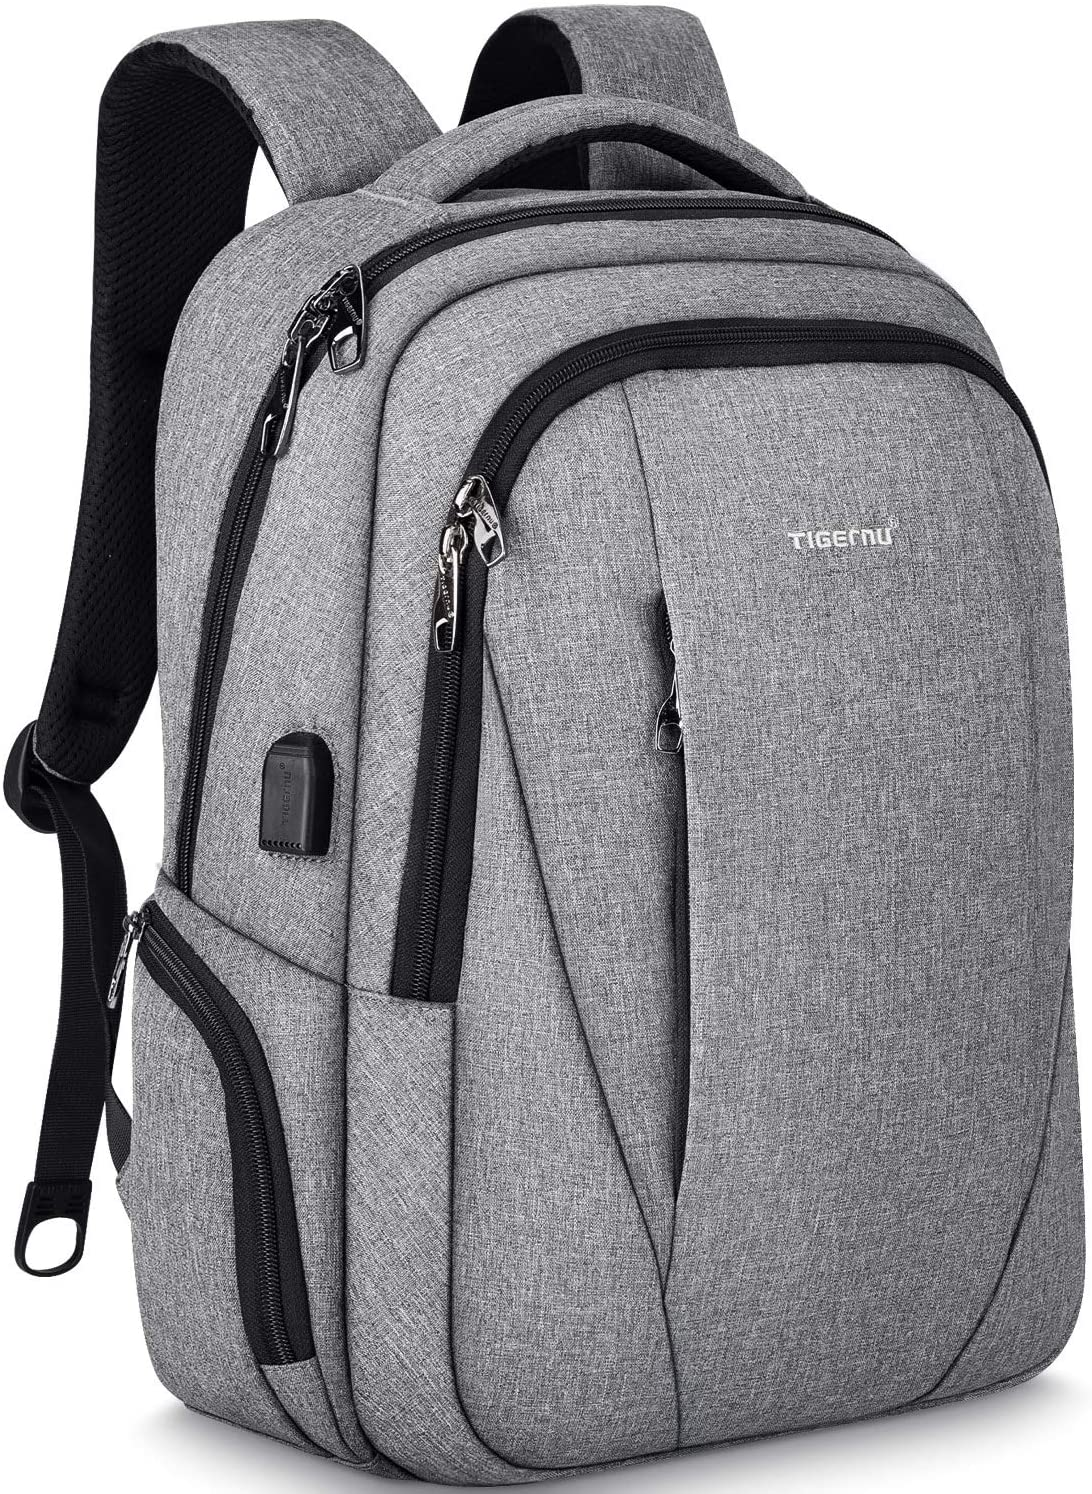 Tigernu Travel Laptop Backpack